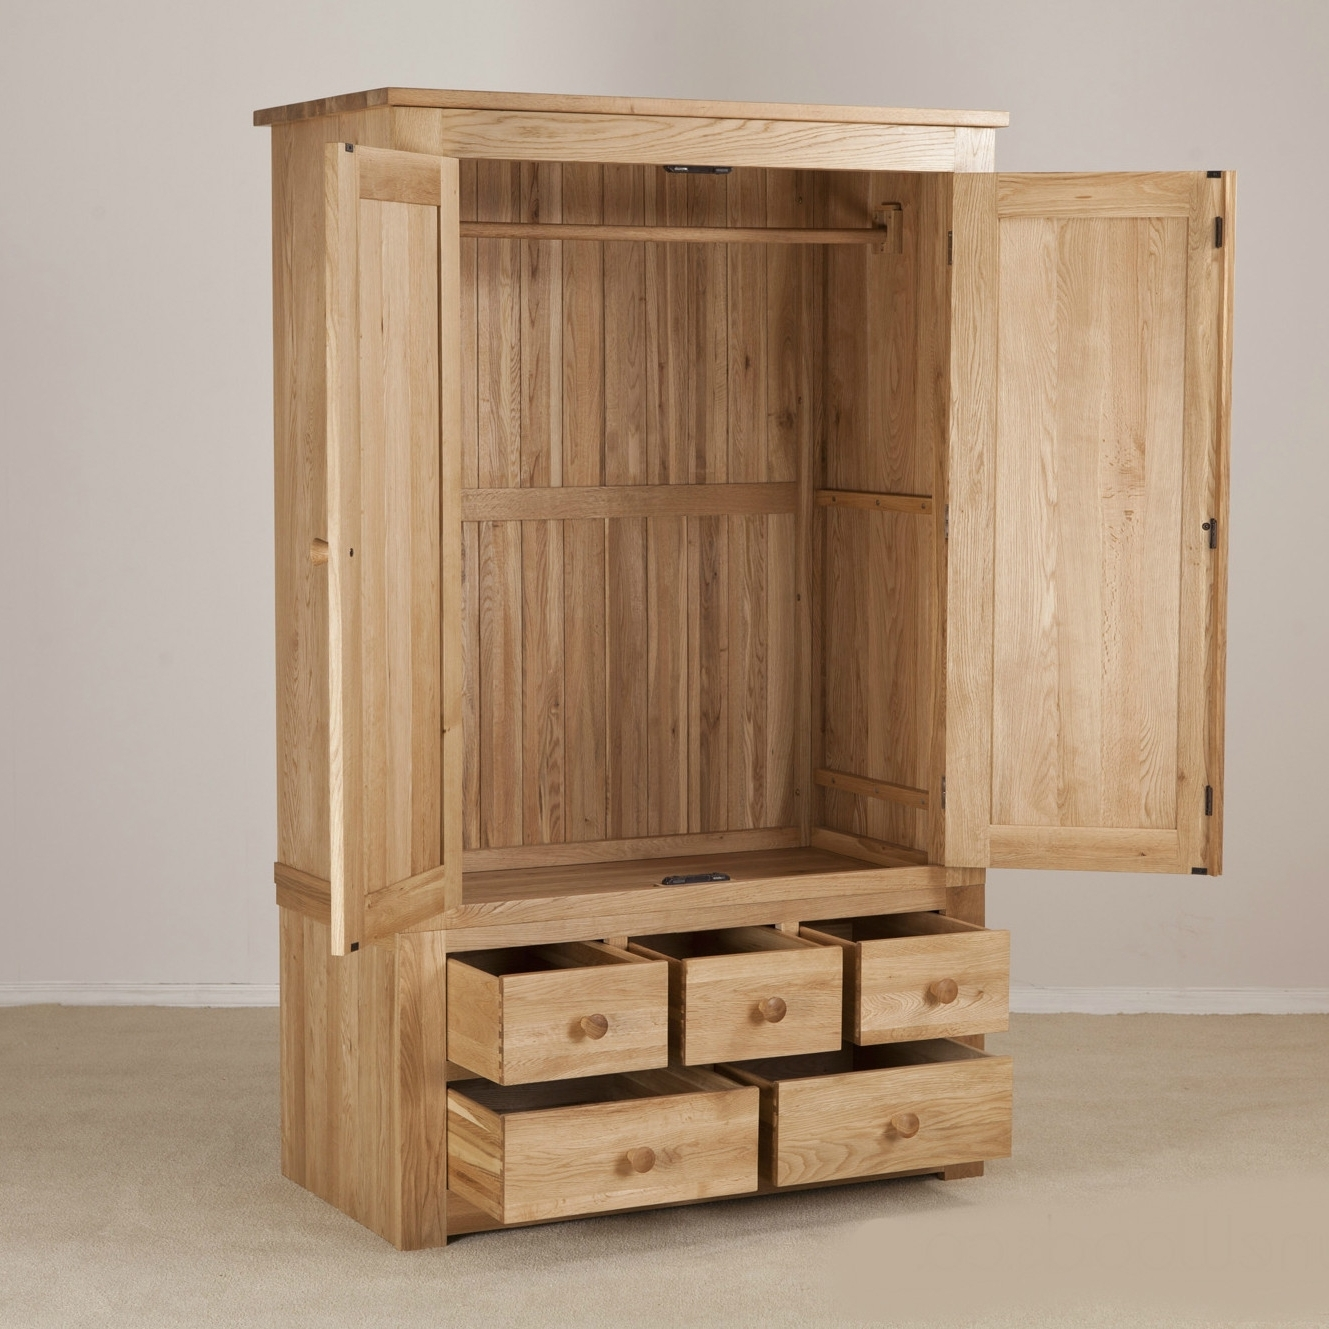 Cheap Wardrobes With Drawers In Most Up To Date Organize Your Stuff With A Wardrobe With Drawers (View 6 of 15)